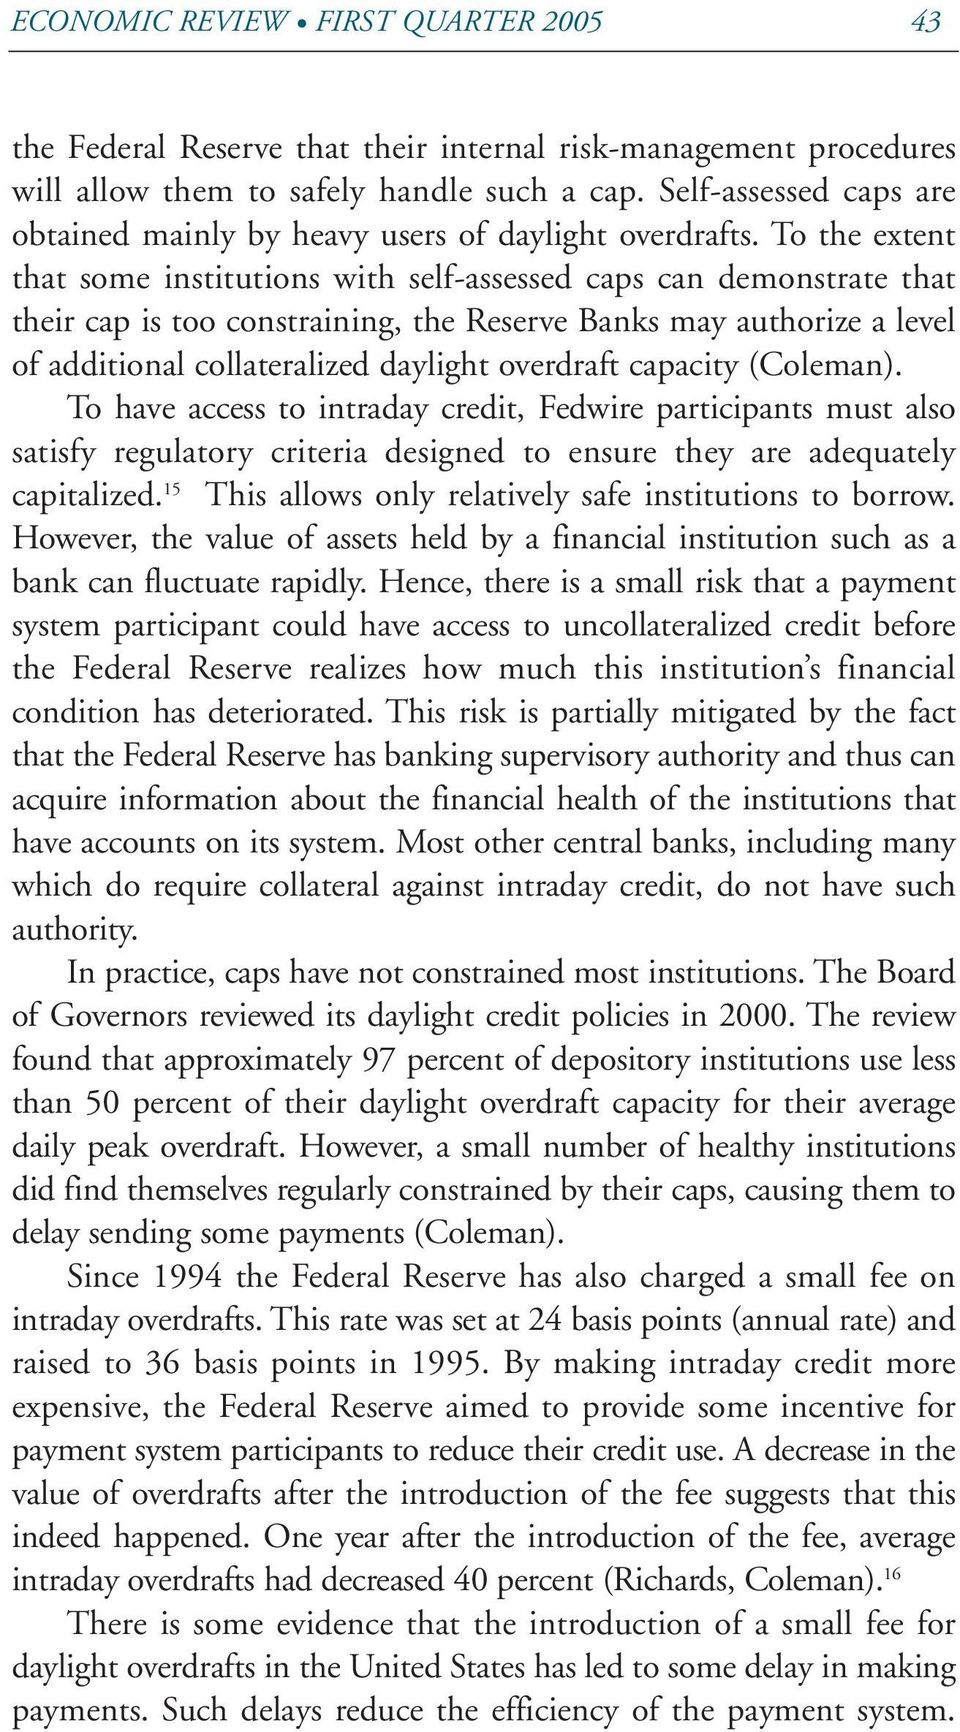 To the extent that some institutions with self-assessed caps can demonstrate that their cap is too constraining, the Reserve Banks may authorize a level of additional collateralized daylight